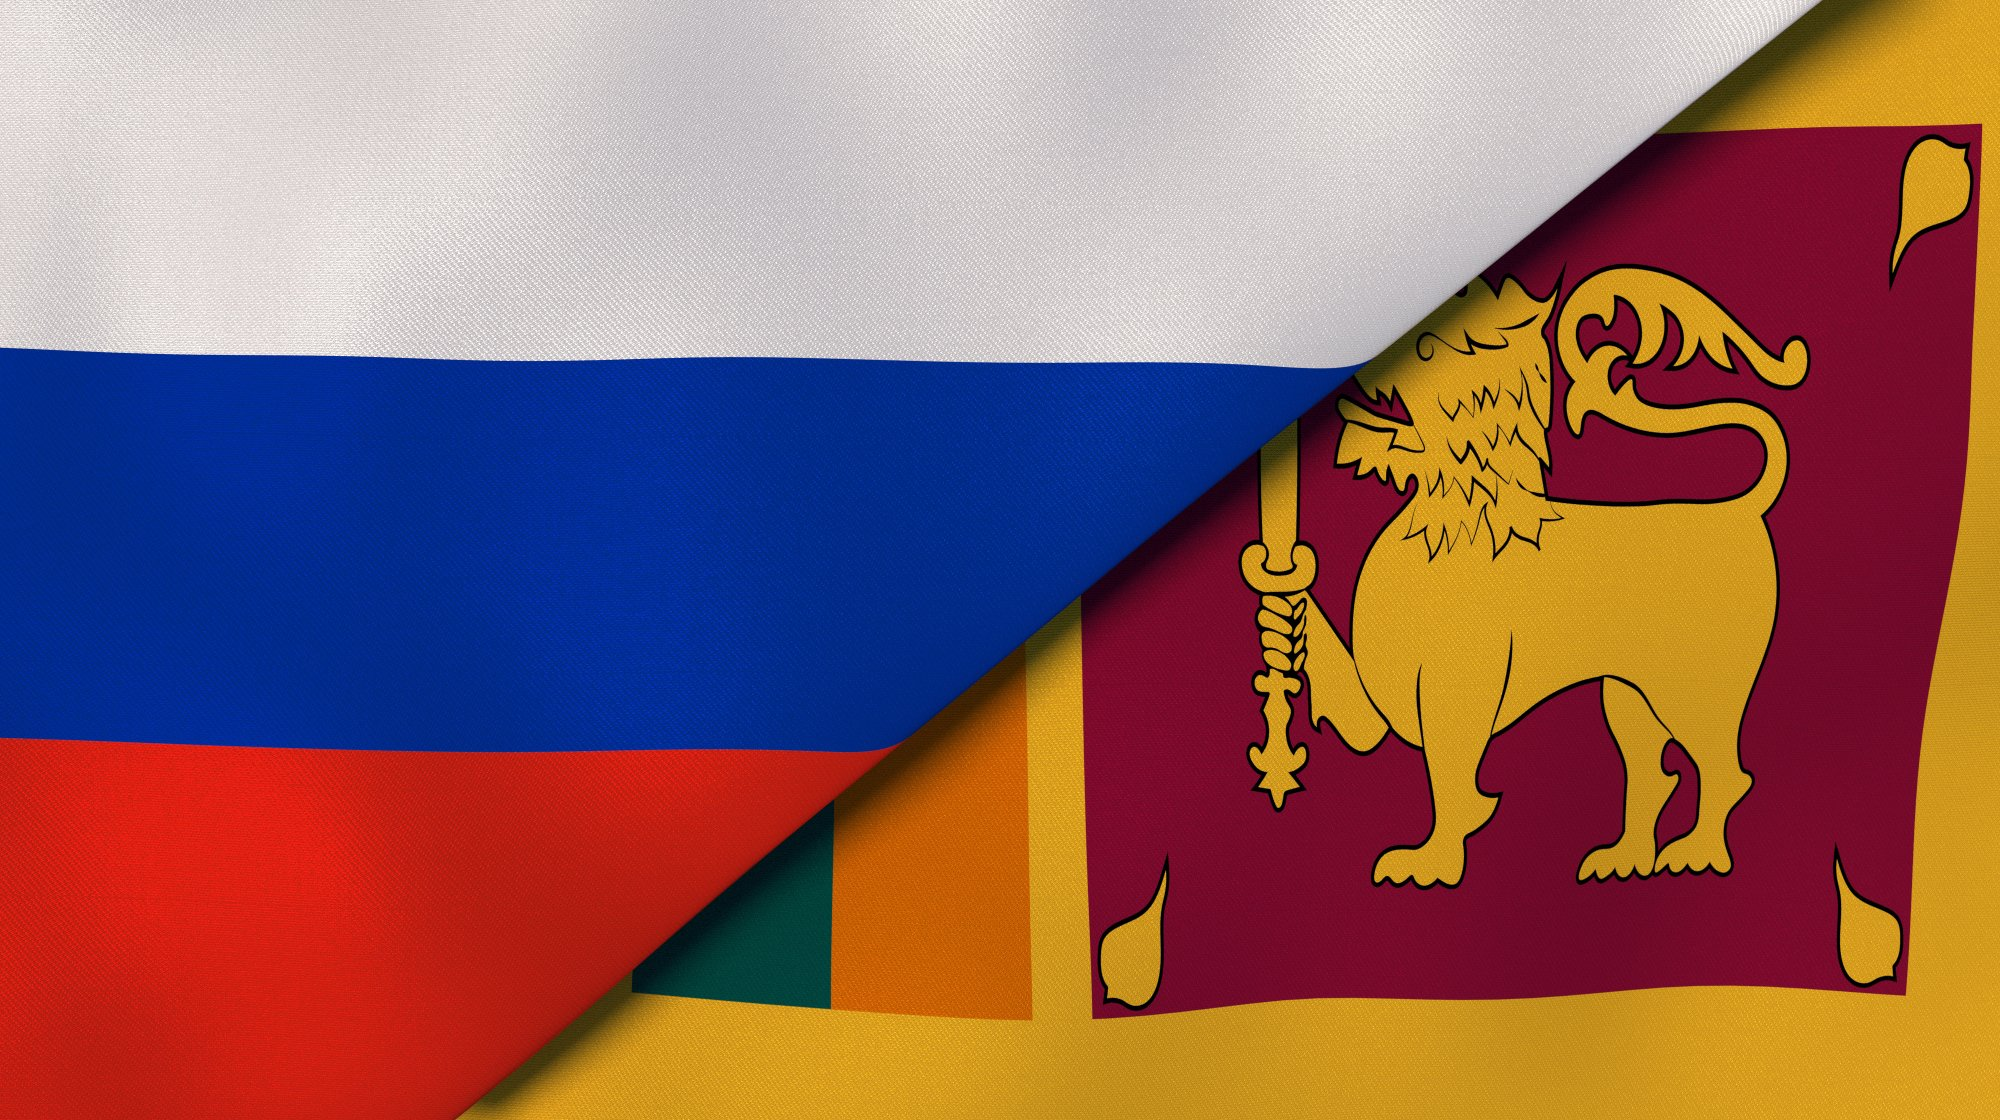 It is planned to double the commodities' turnover between Russia and Sri Lanka